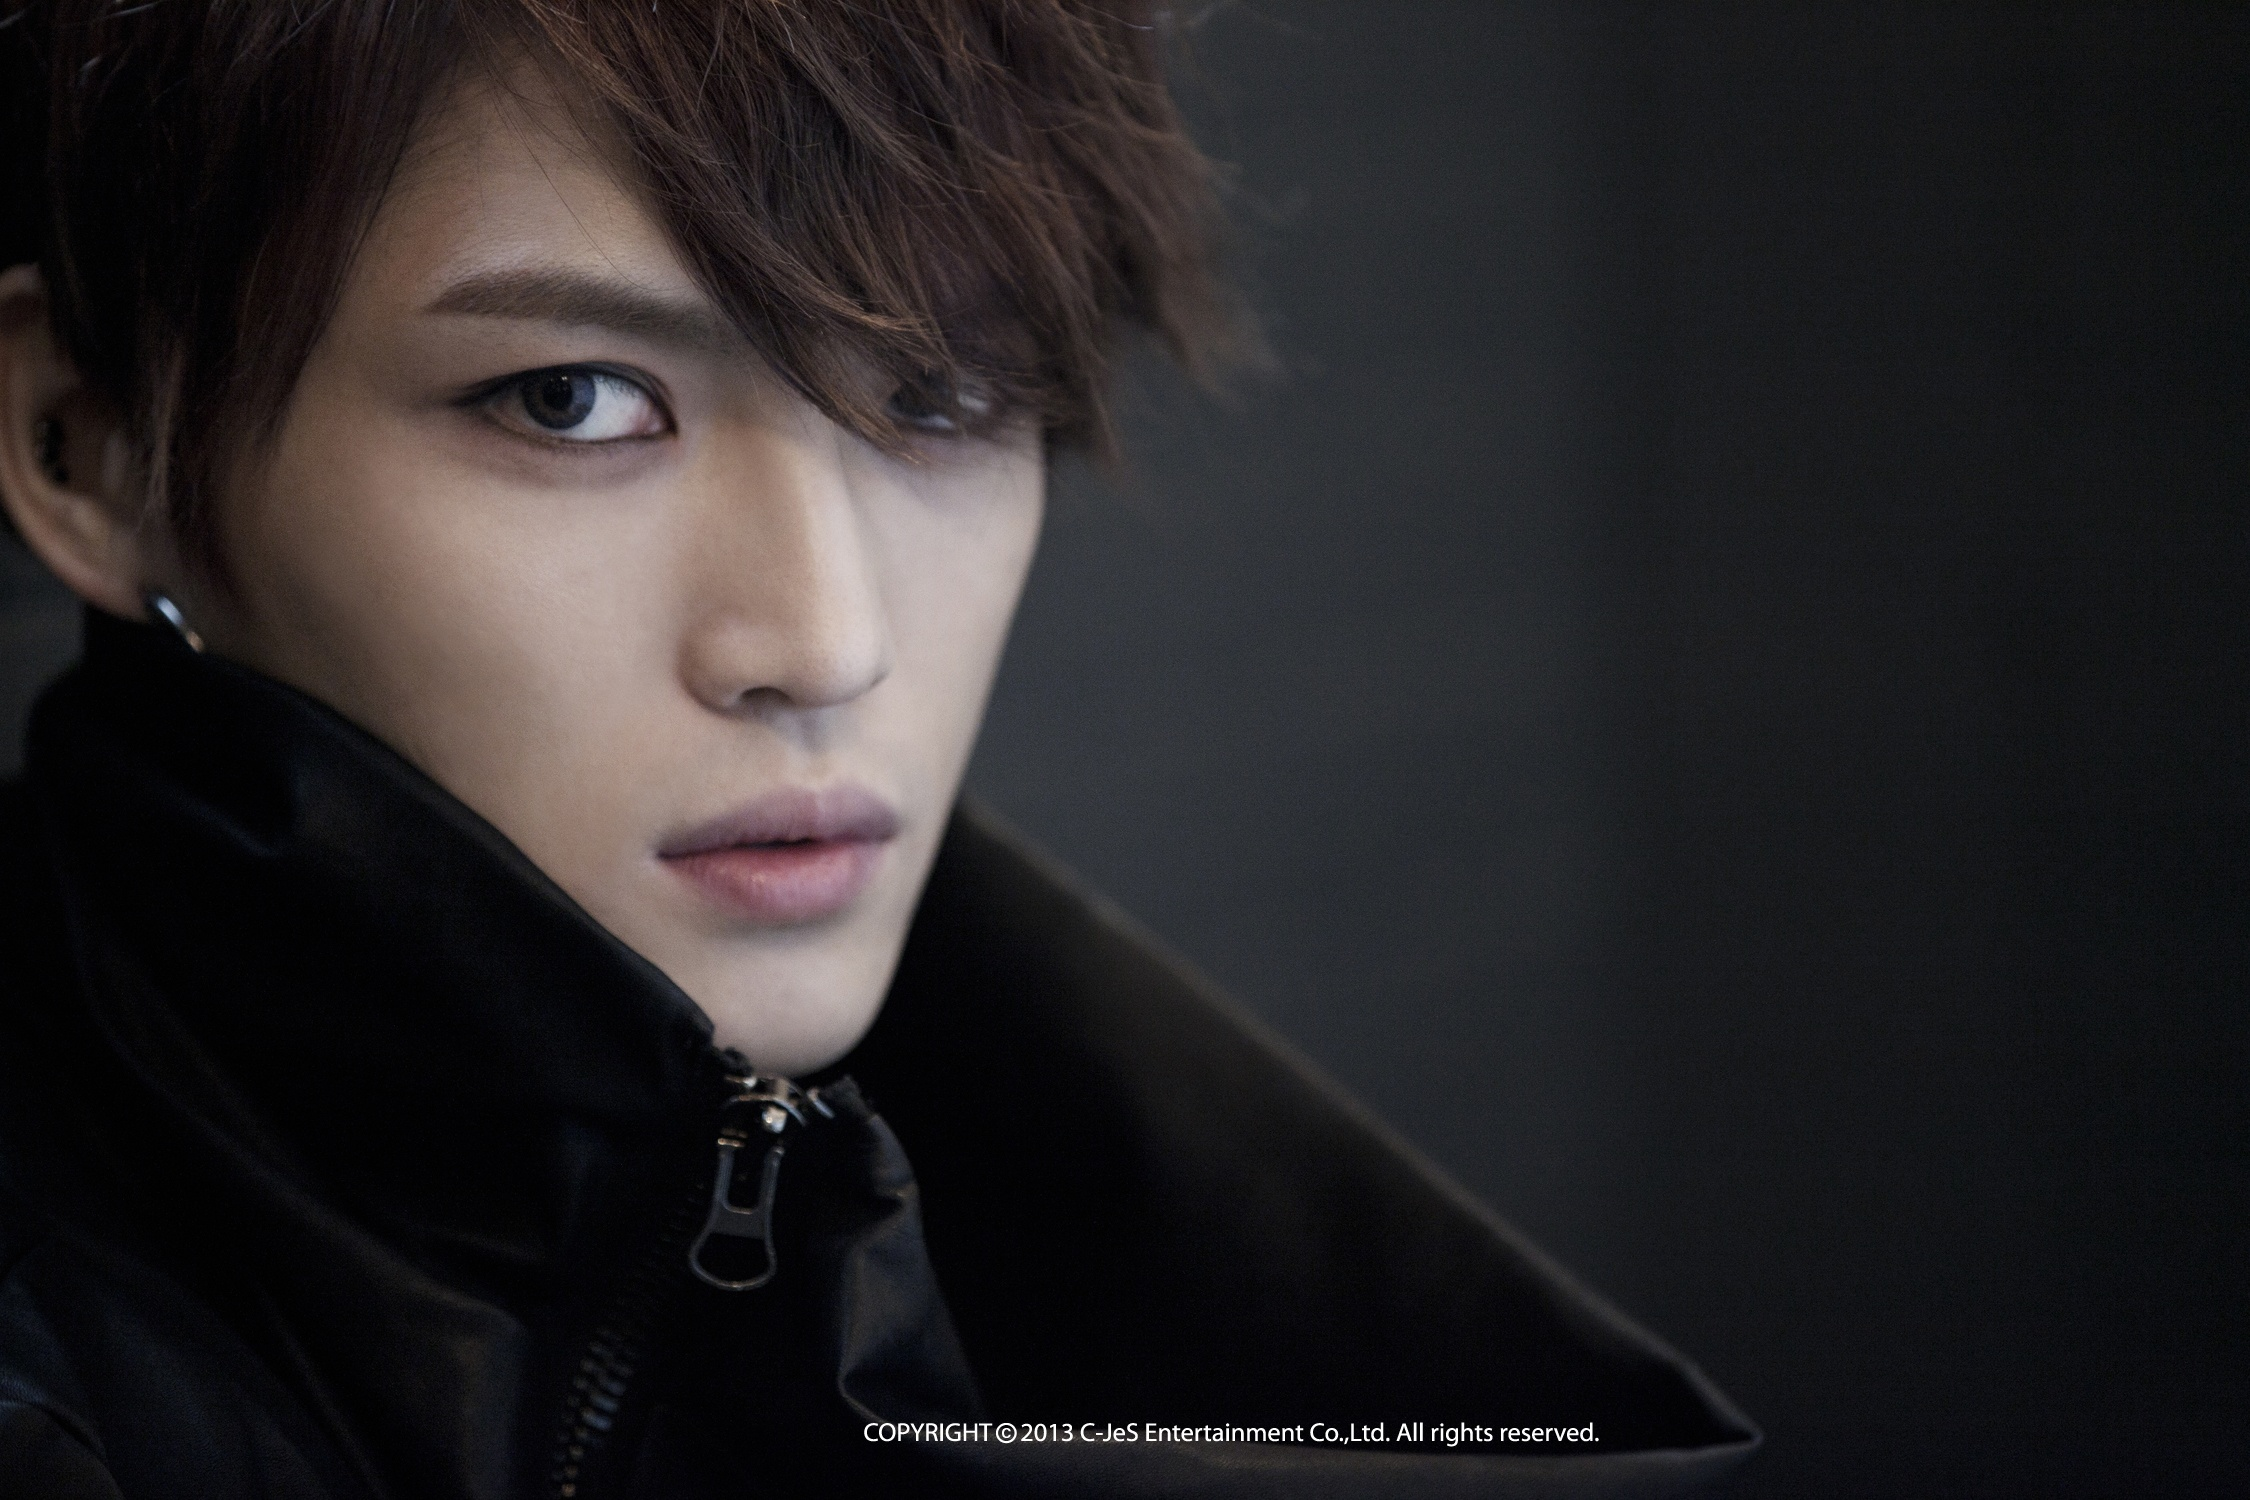 Koreans vote JYJ Jaejoong as celebrity with the most dangerous visuals